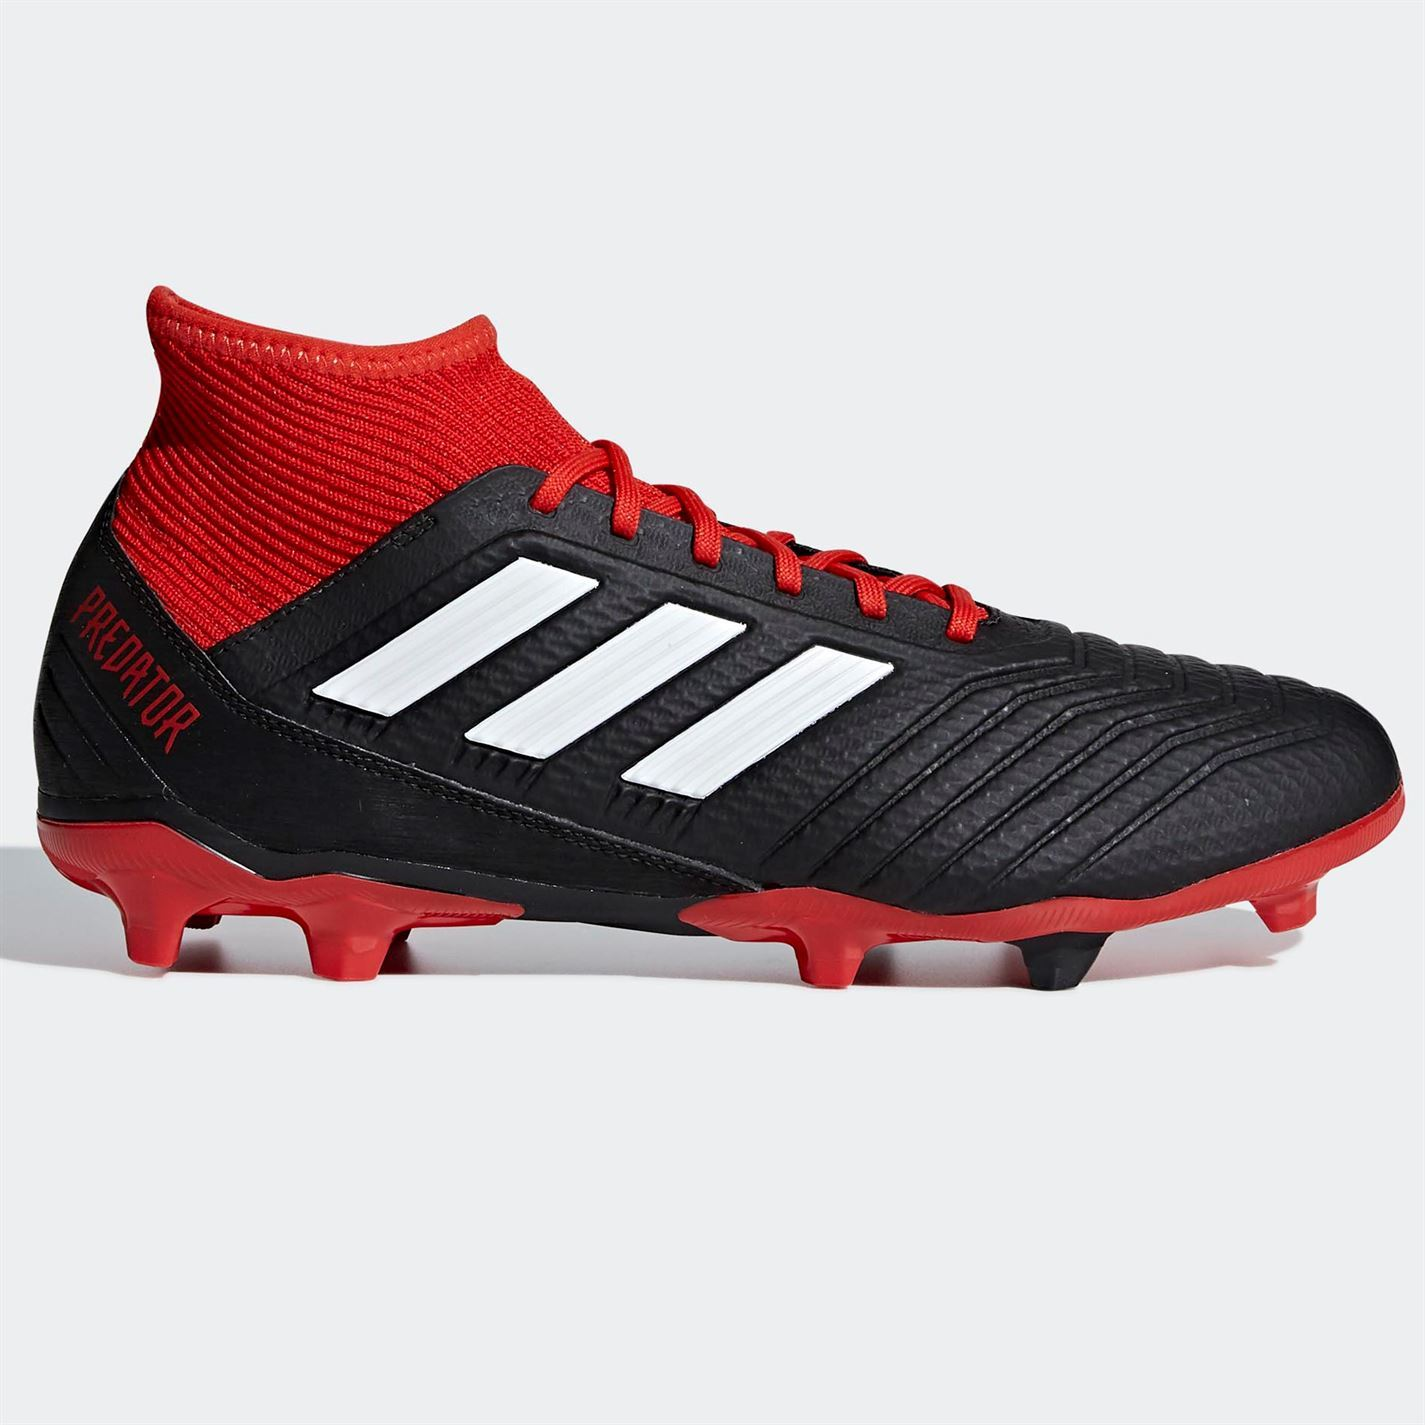 premium selection 96346 e582e ... adidas Predator 18.3 FG Firm Ground Football Boots Mens Soccer Shoes  Cleats ...